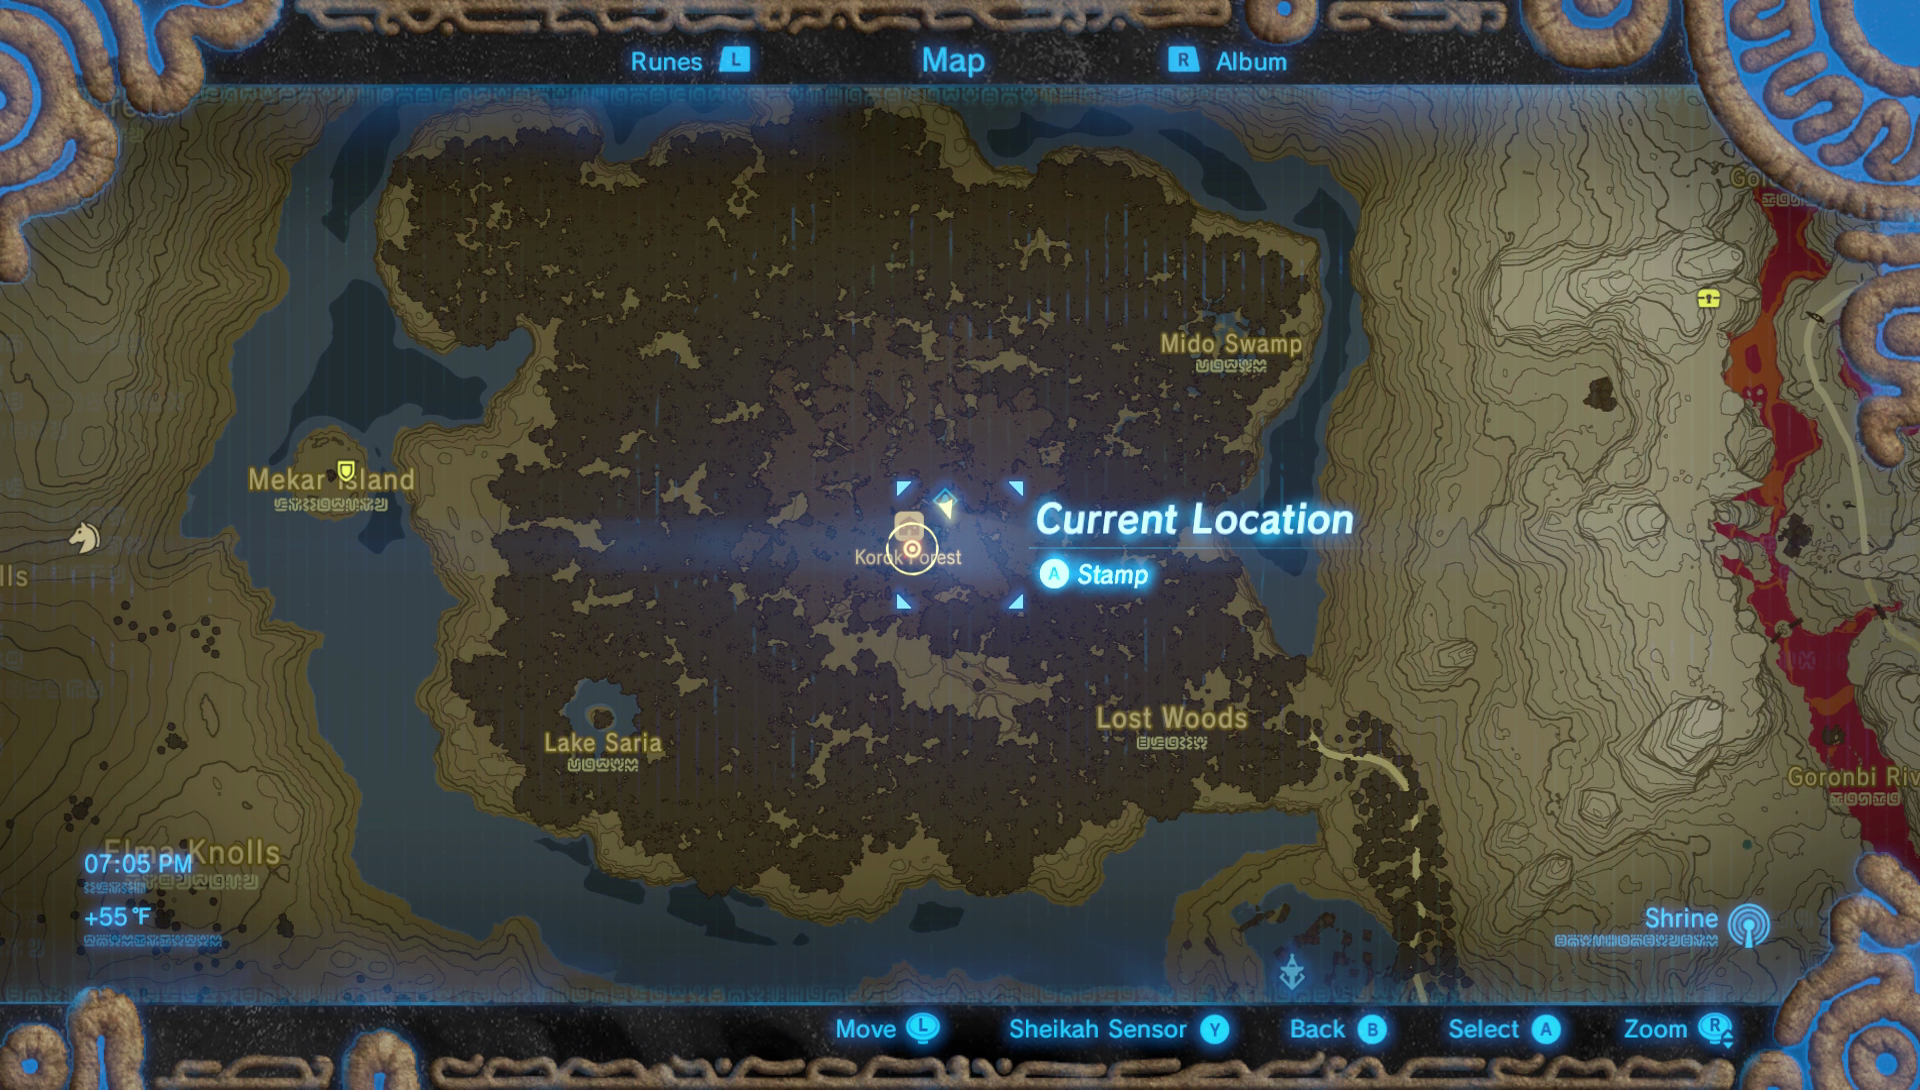 Getting To The Master Sword In Breath Of The Wild Isn't As Simple As